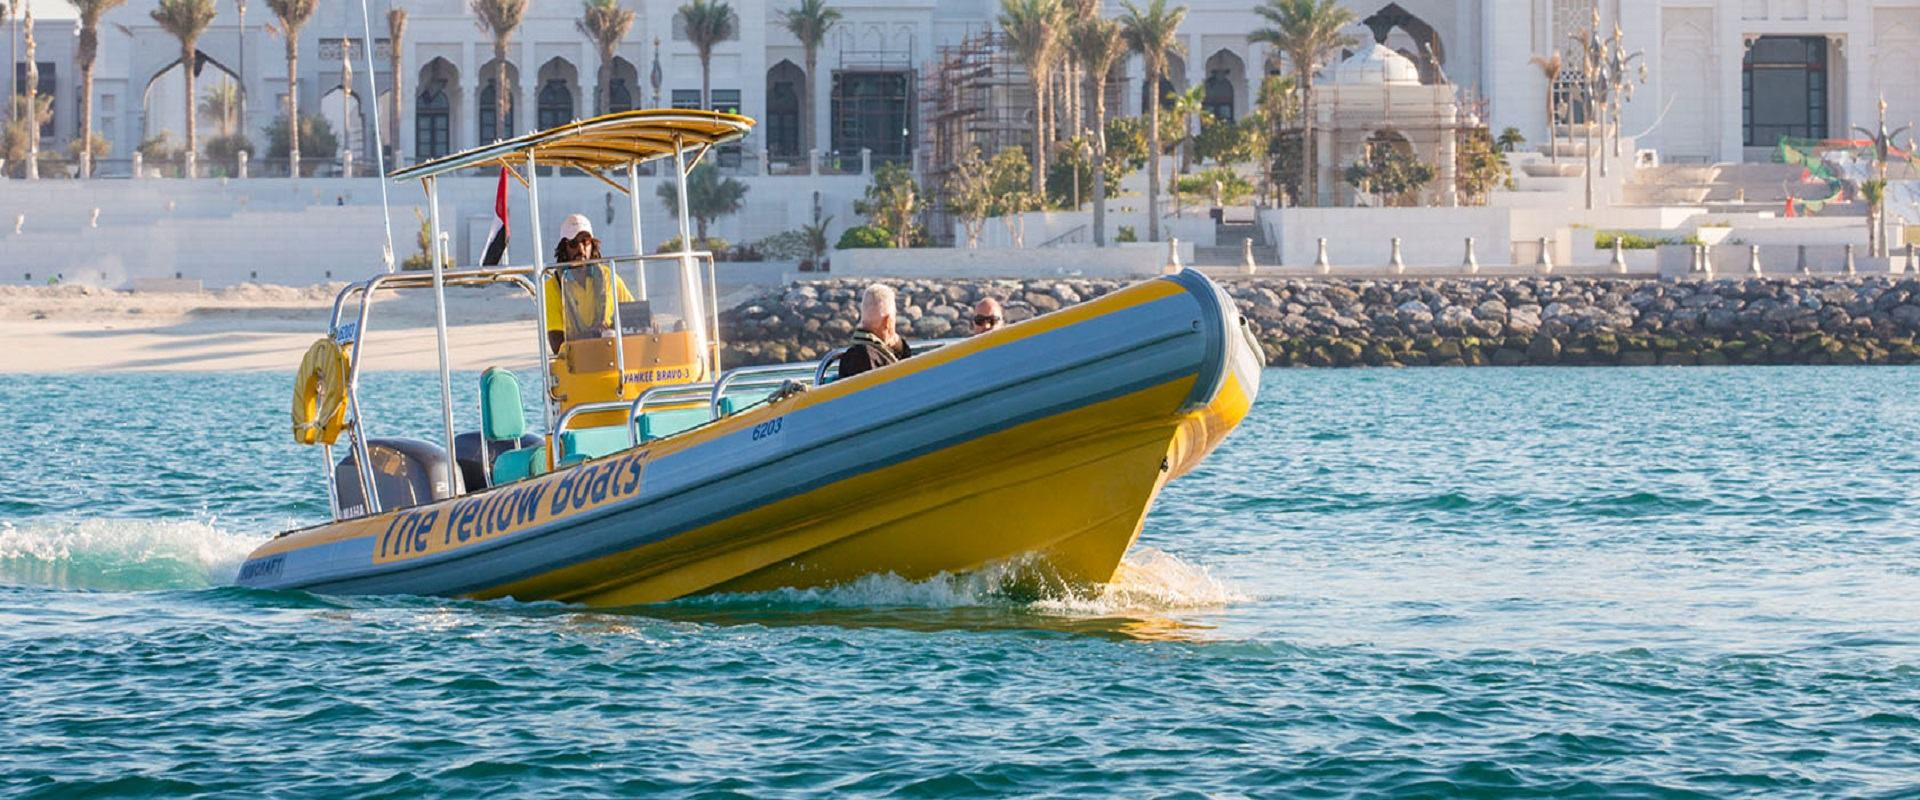 Yellow Boats Ride - Abu Dhabi